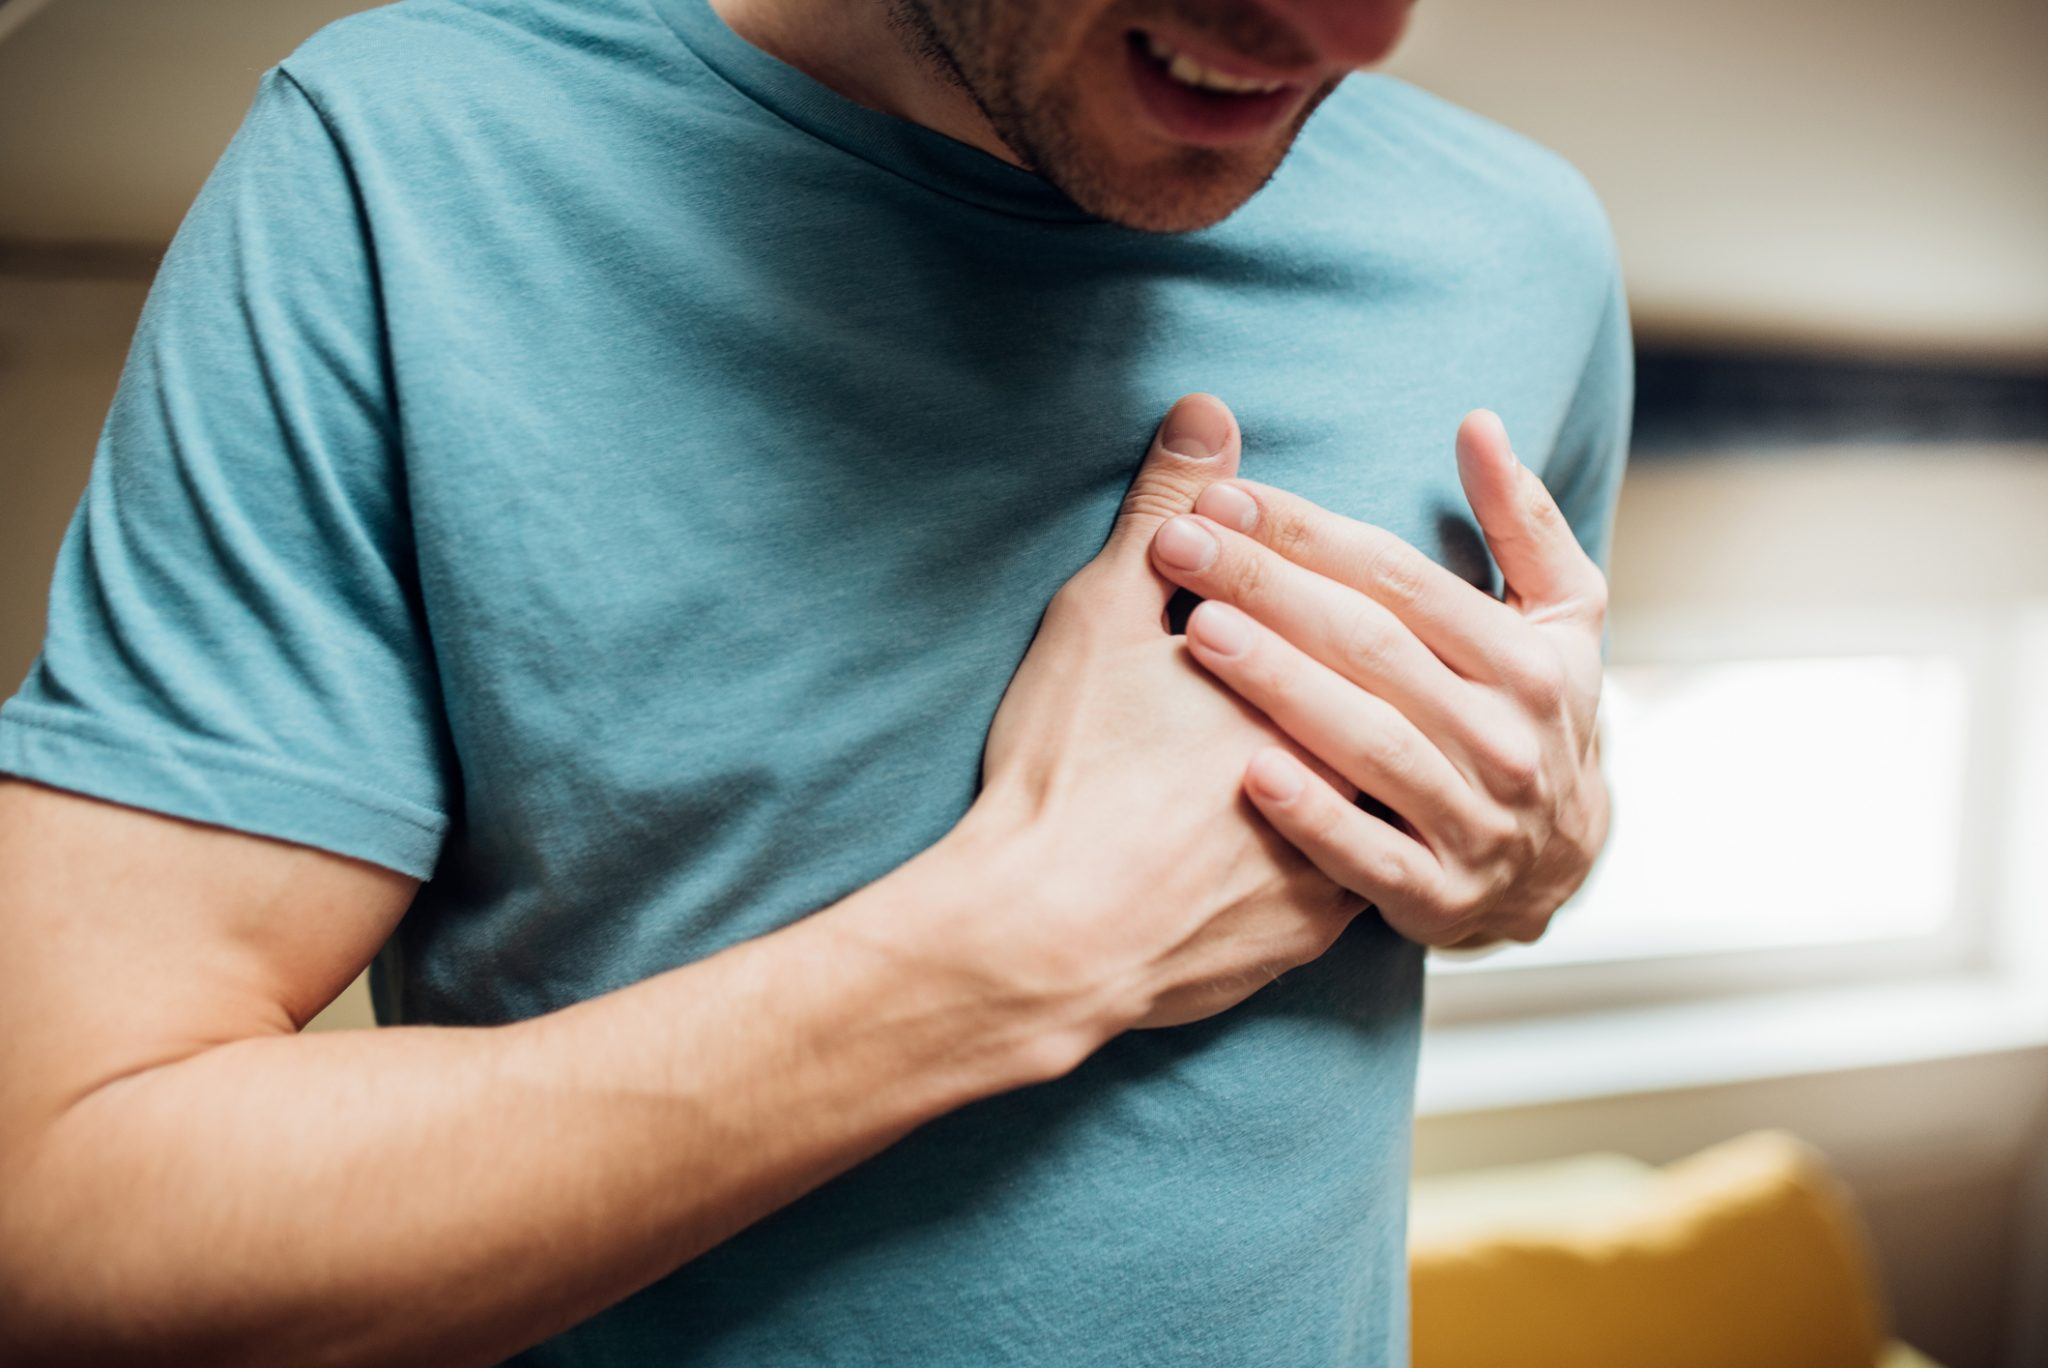 Is It Possible To Strengthen Your Damaged Heart?